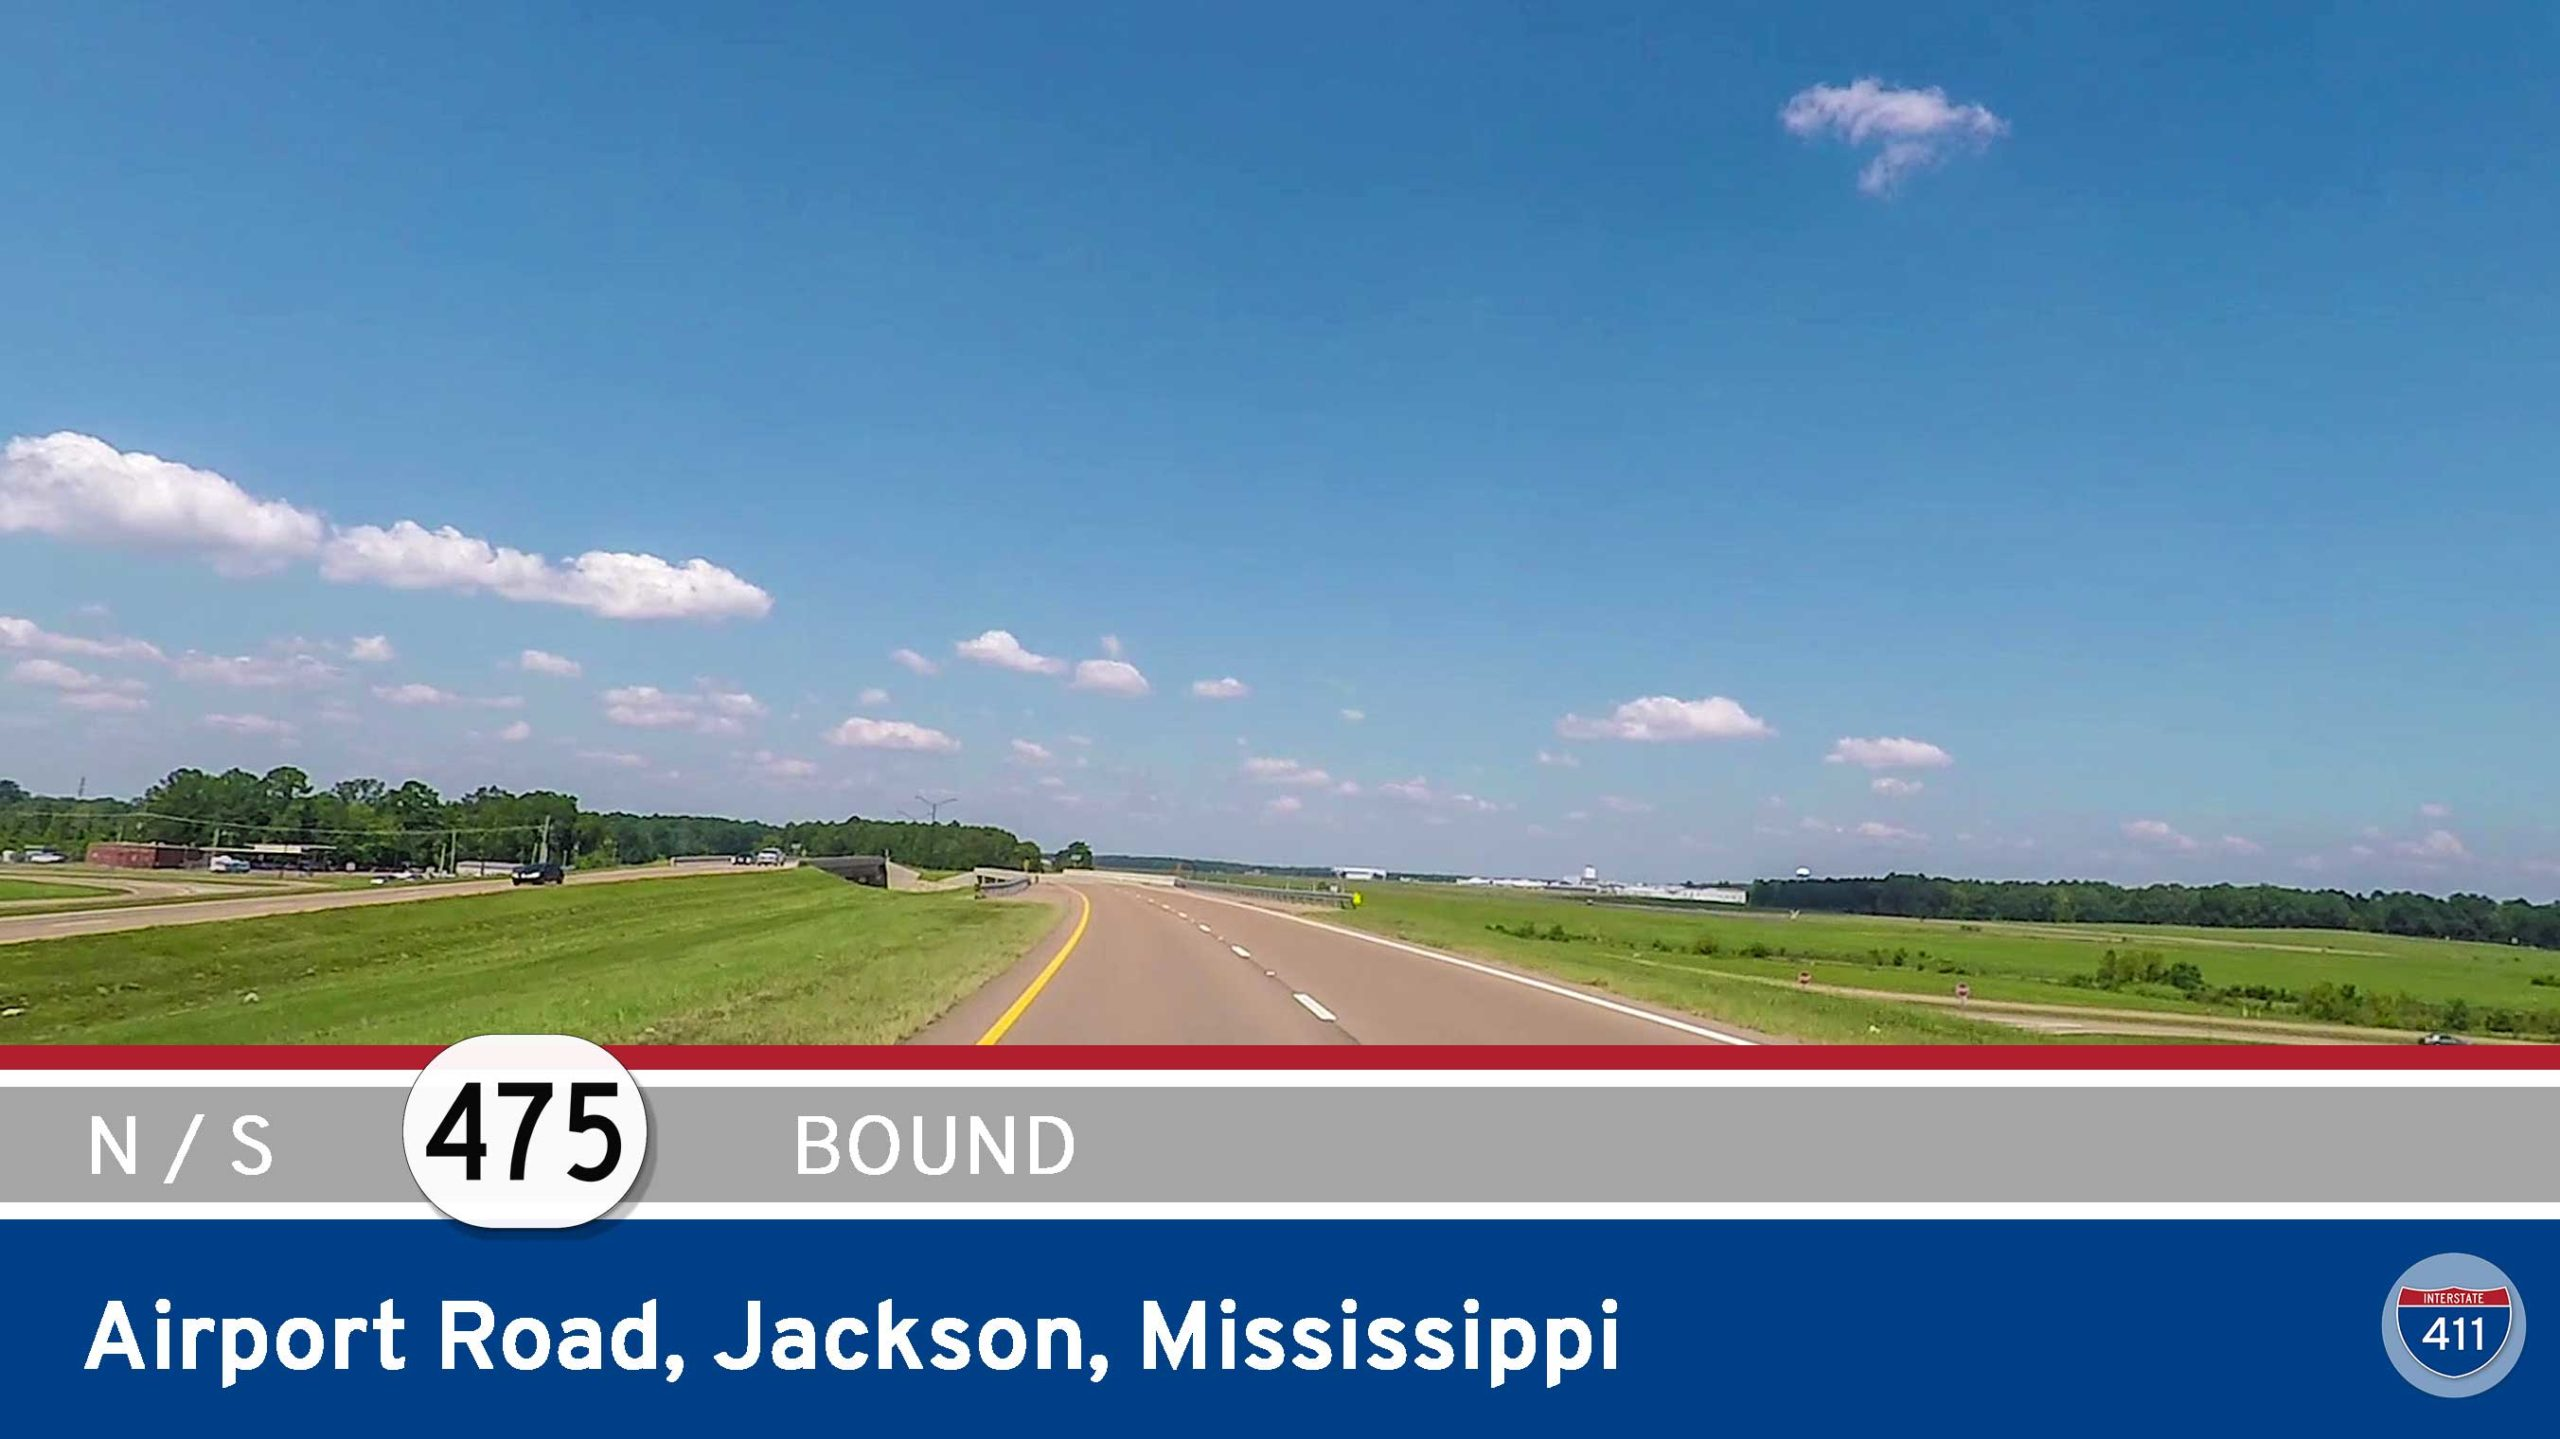 Drive America's Highways both directions along Mississippi Highway 475 - Airport Rd in Jackson.